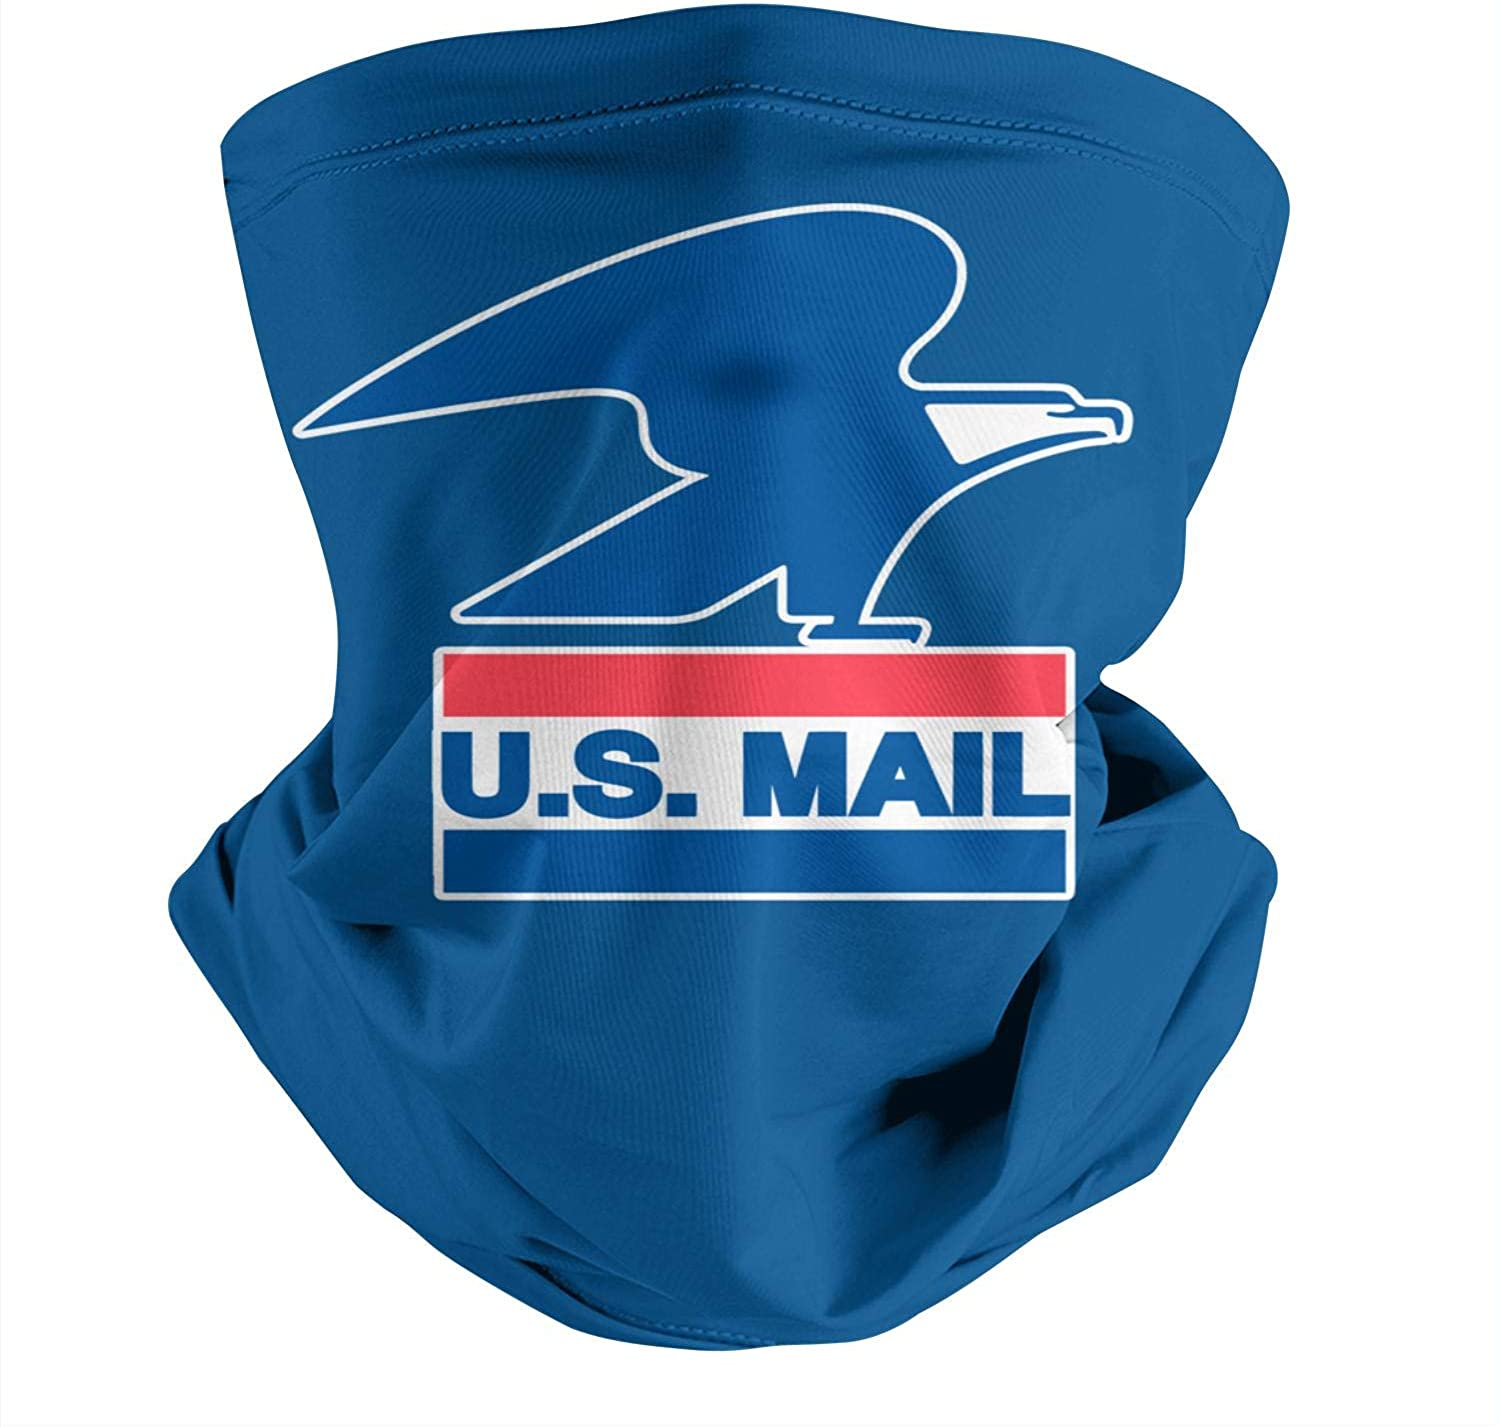 Neck Gaiter U.S-Mail Outdoors Balaclava Headwear Postal Service Face Cover